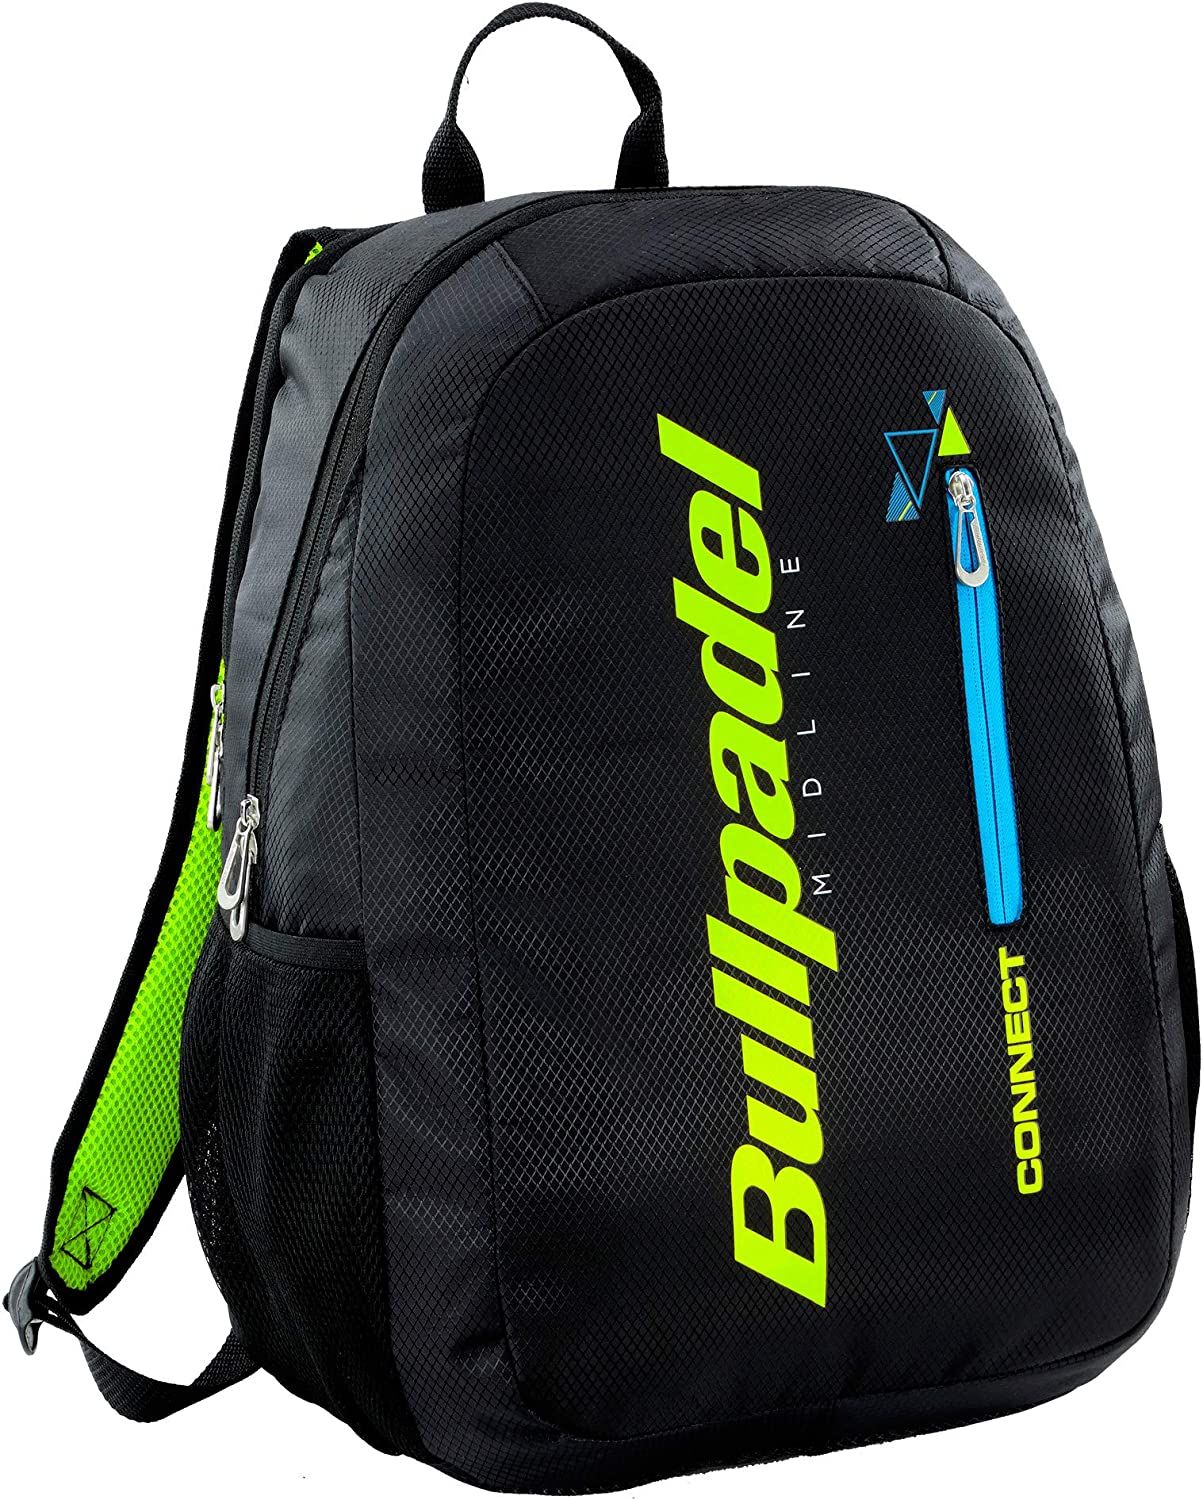 Mochila Bullpadel BPM 18002 Connect: Amazon.es: Deportes y aire libre